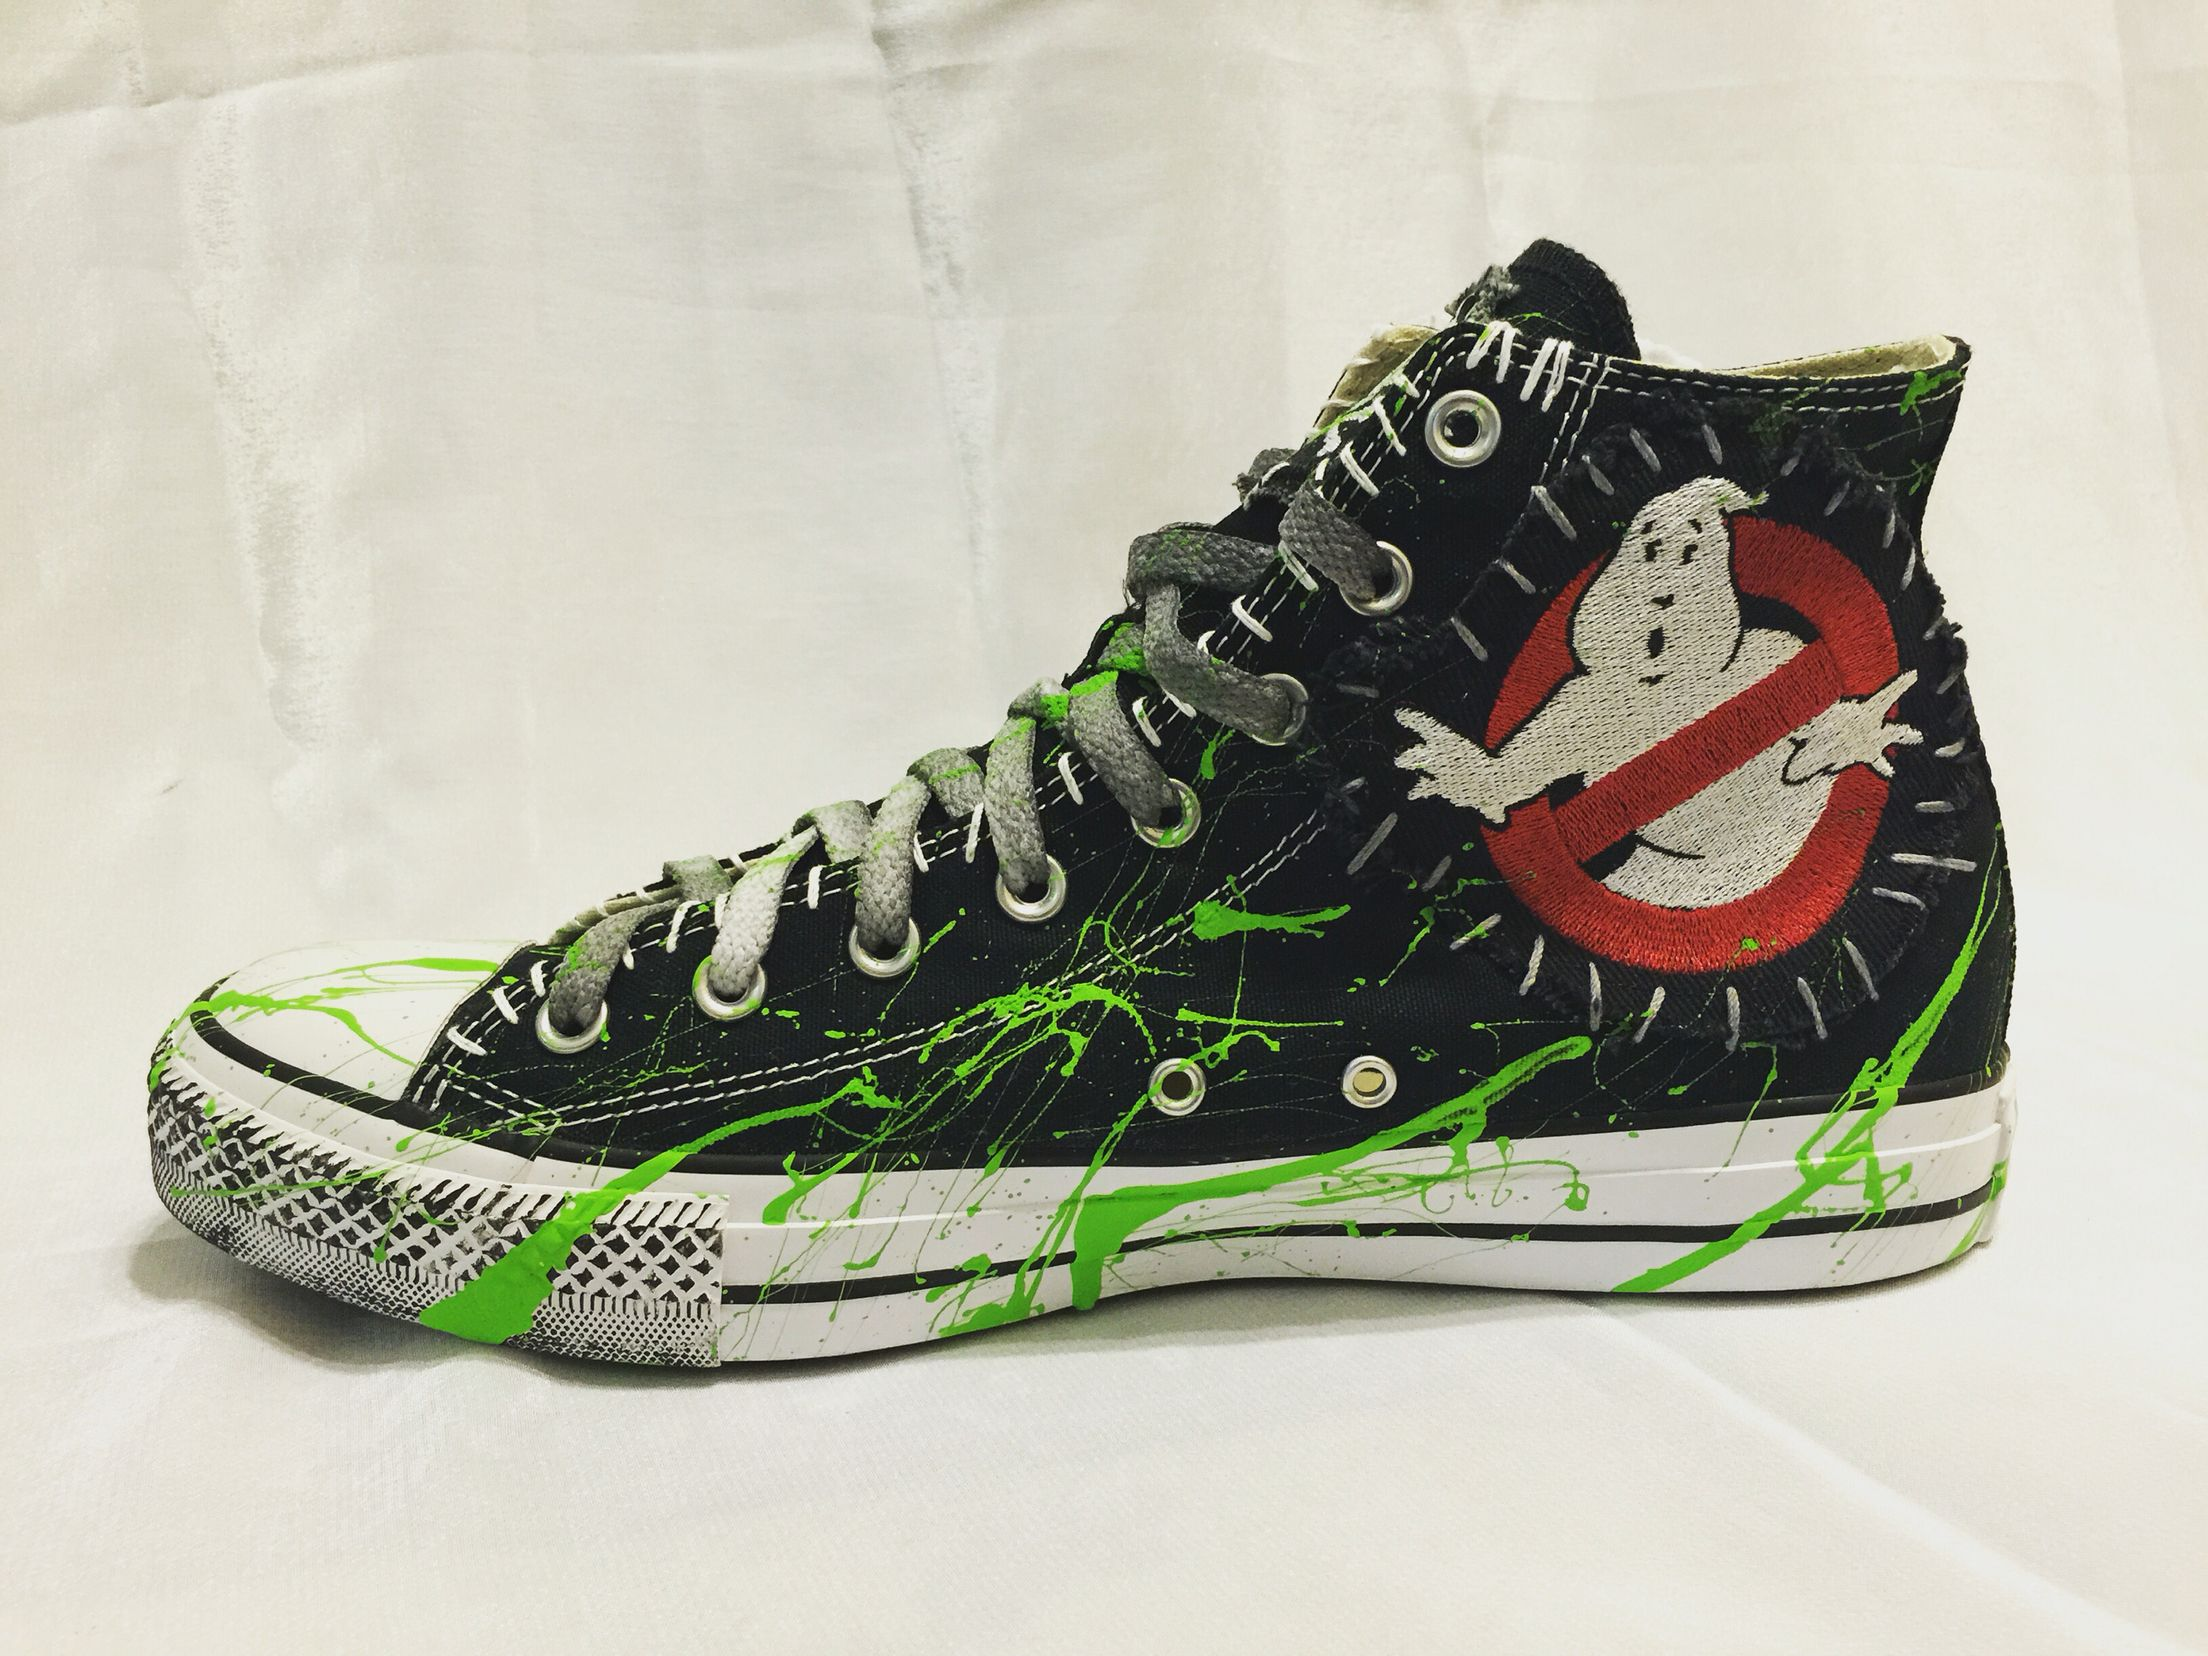 Walking dead converse shoes for sale - Ghostbuster All Star Converse Shoes From Chad Cherry Clothing Horror Icon Shoes